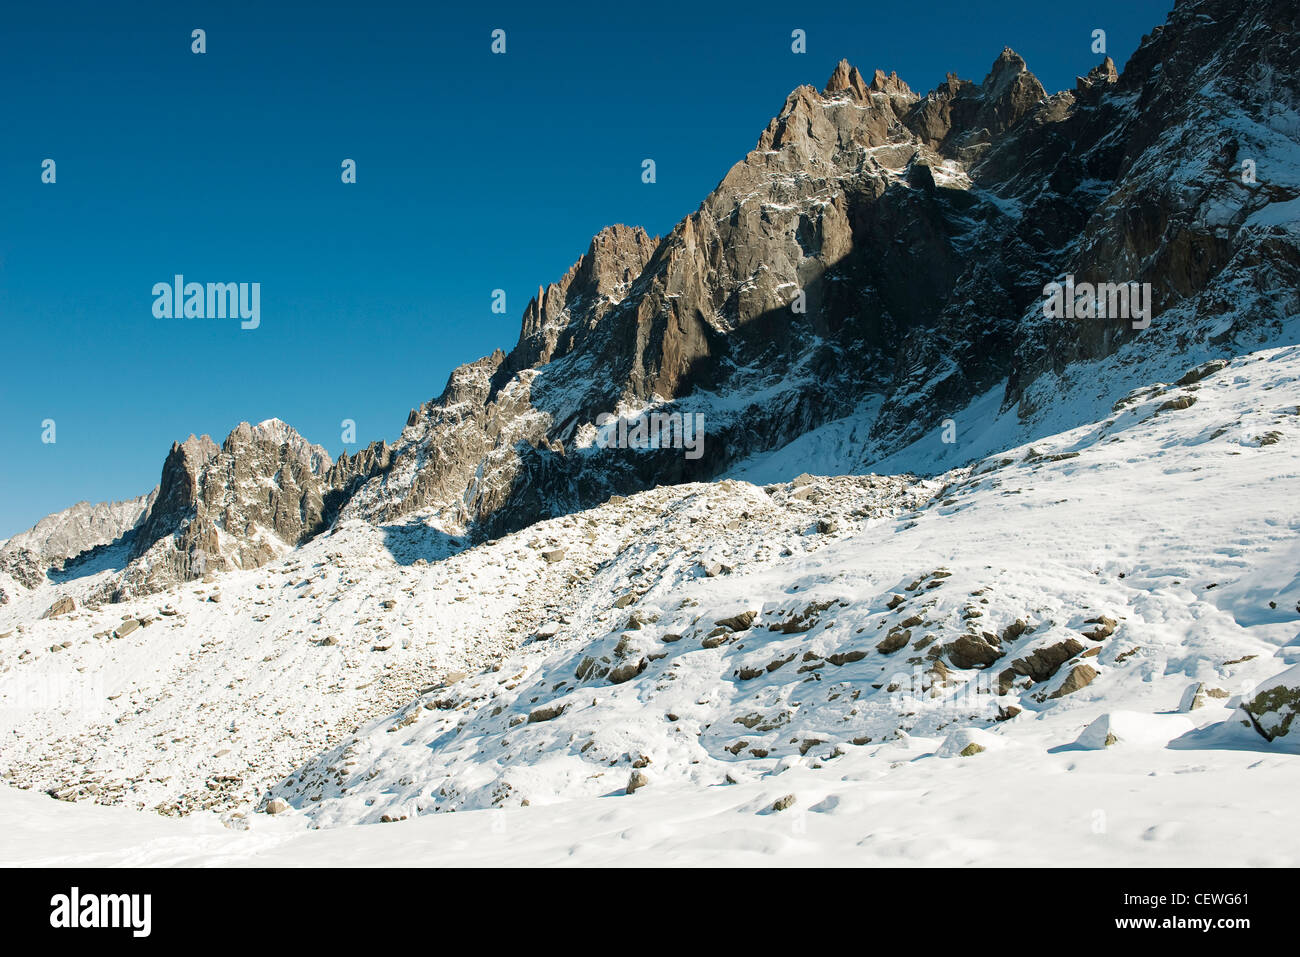 Snowy mountain peaks against clear sky - Stock Image